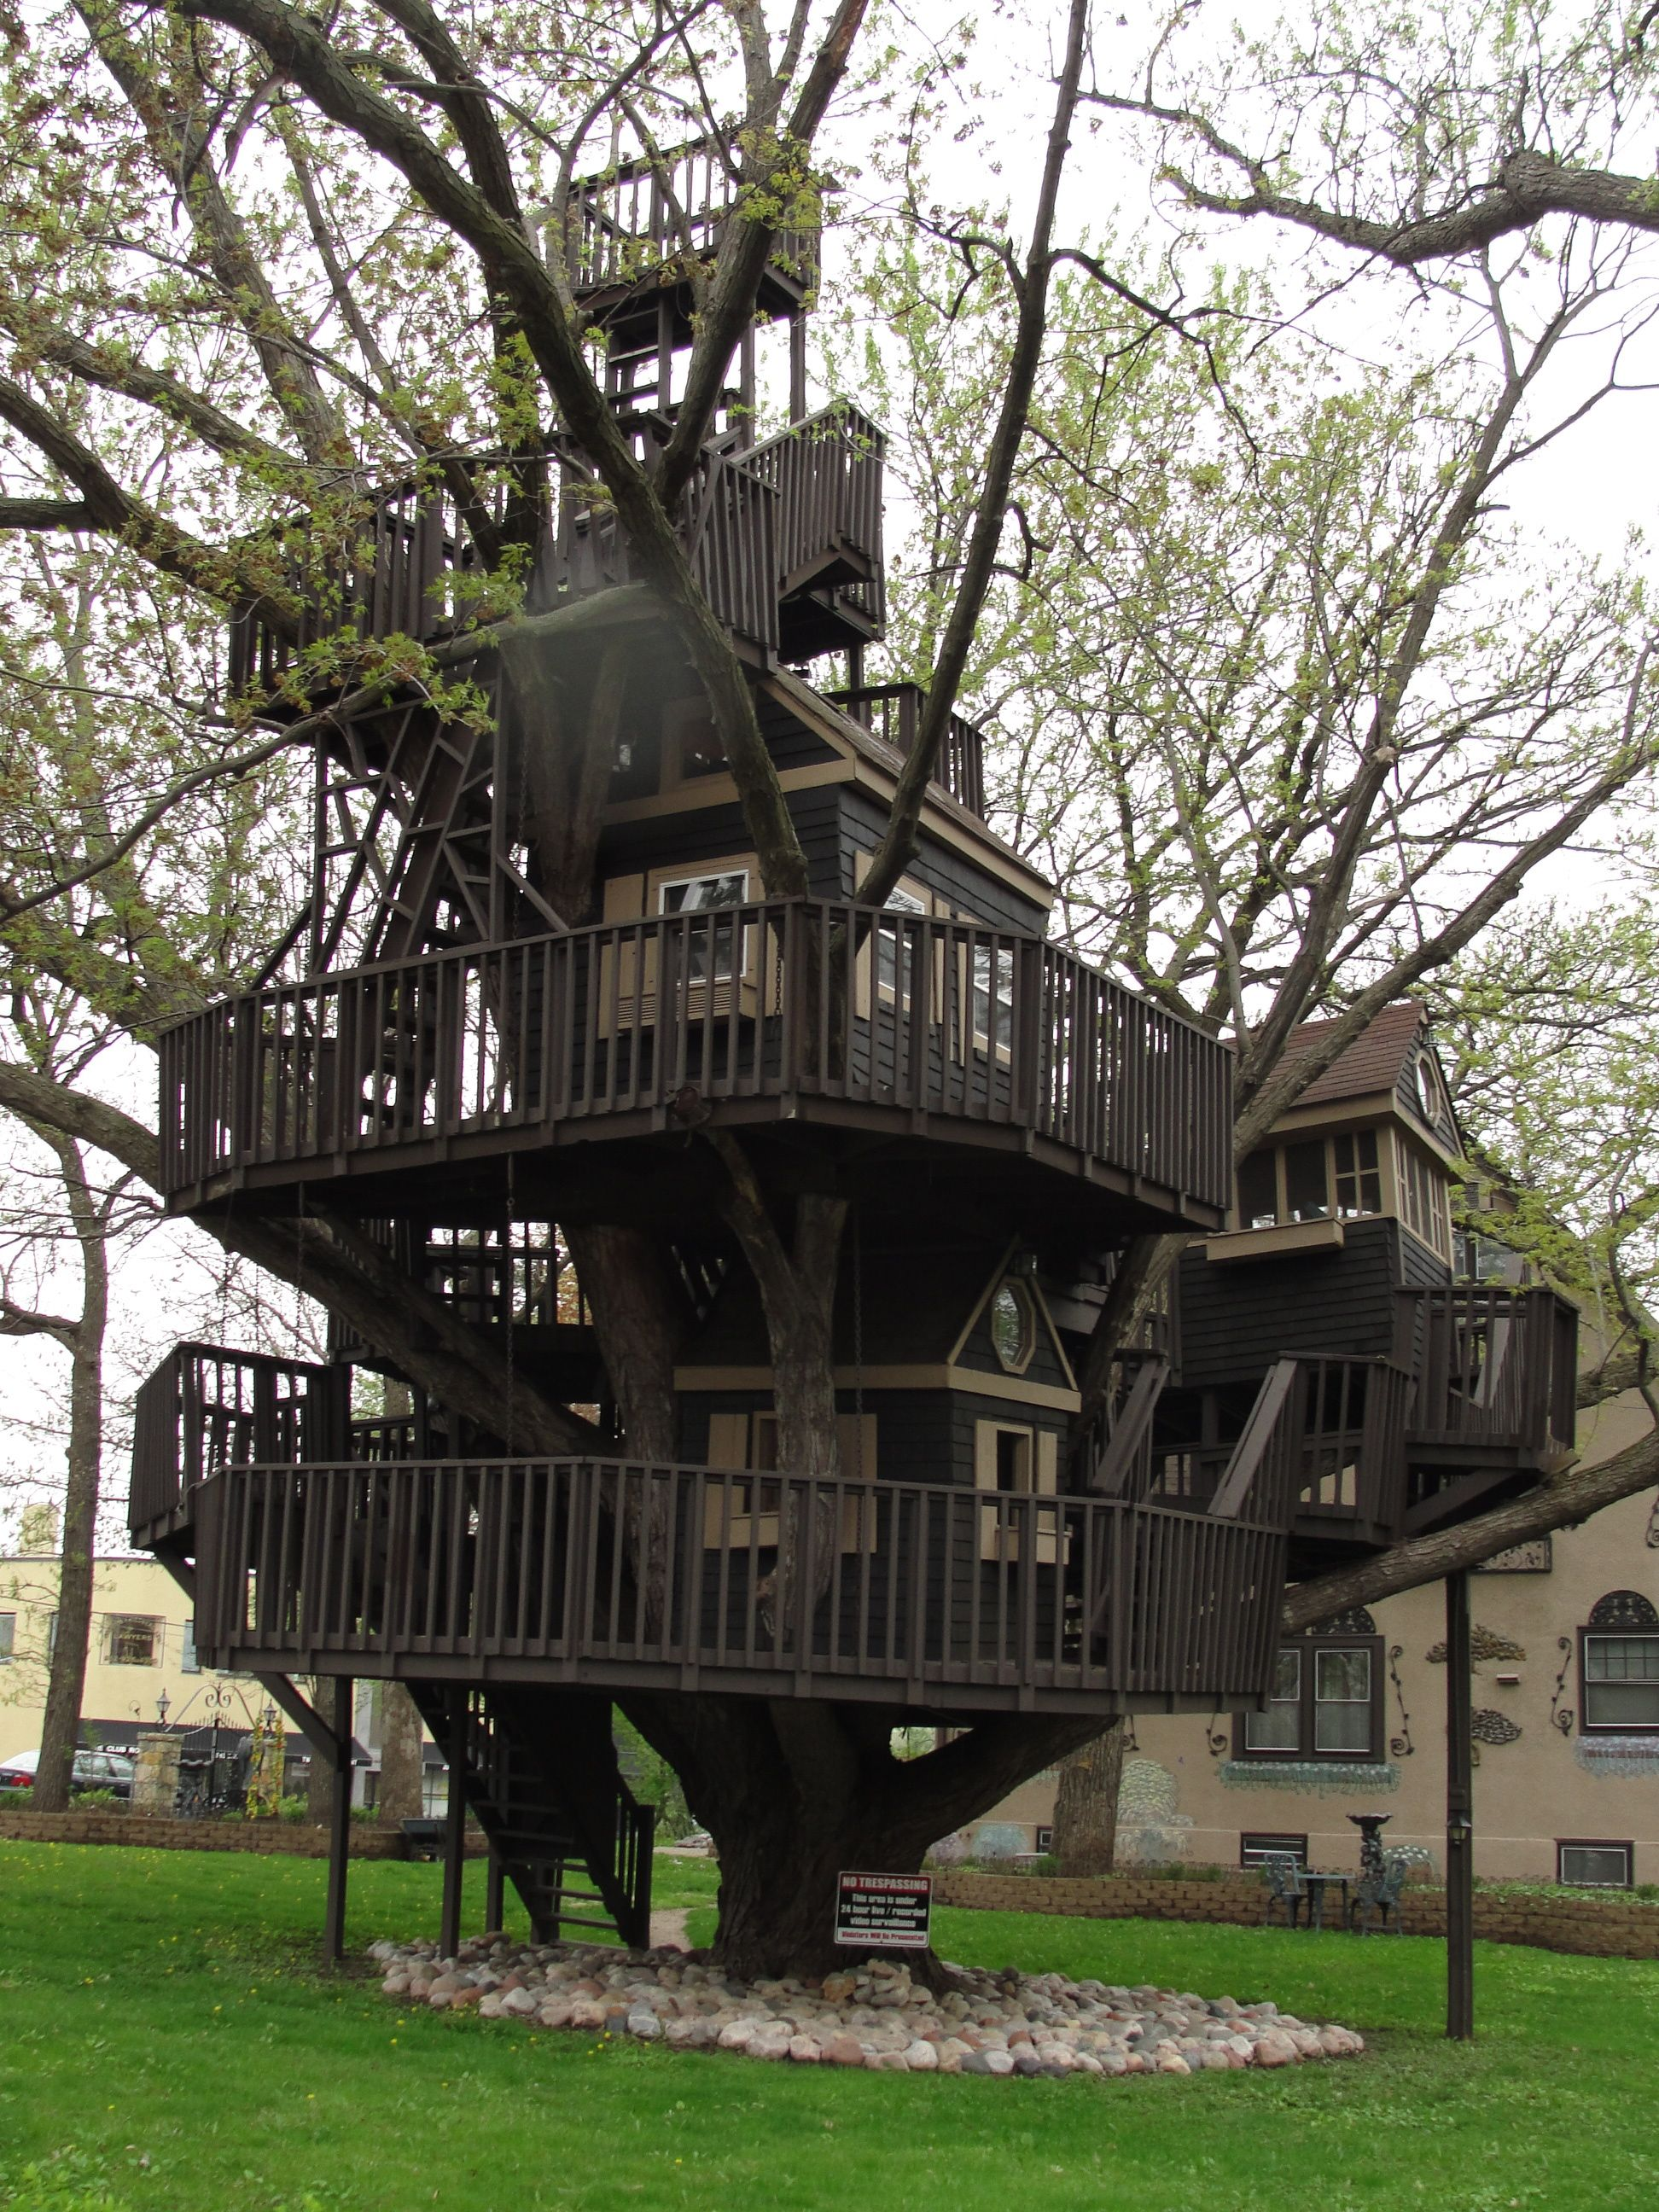 An Amazing Tree House St Louis Park MN The Story Behind This